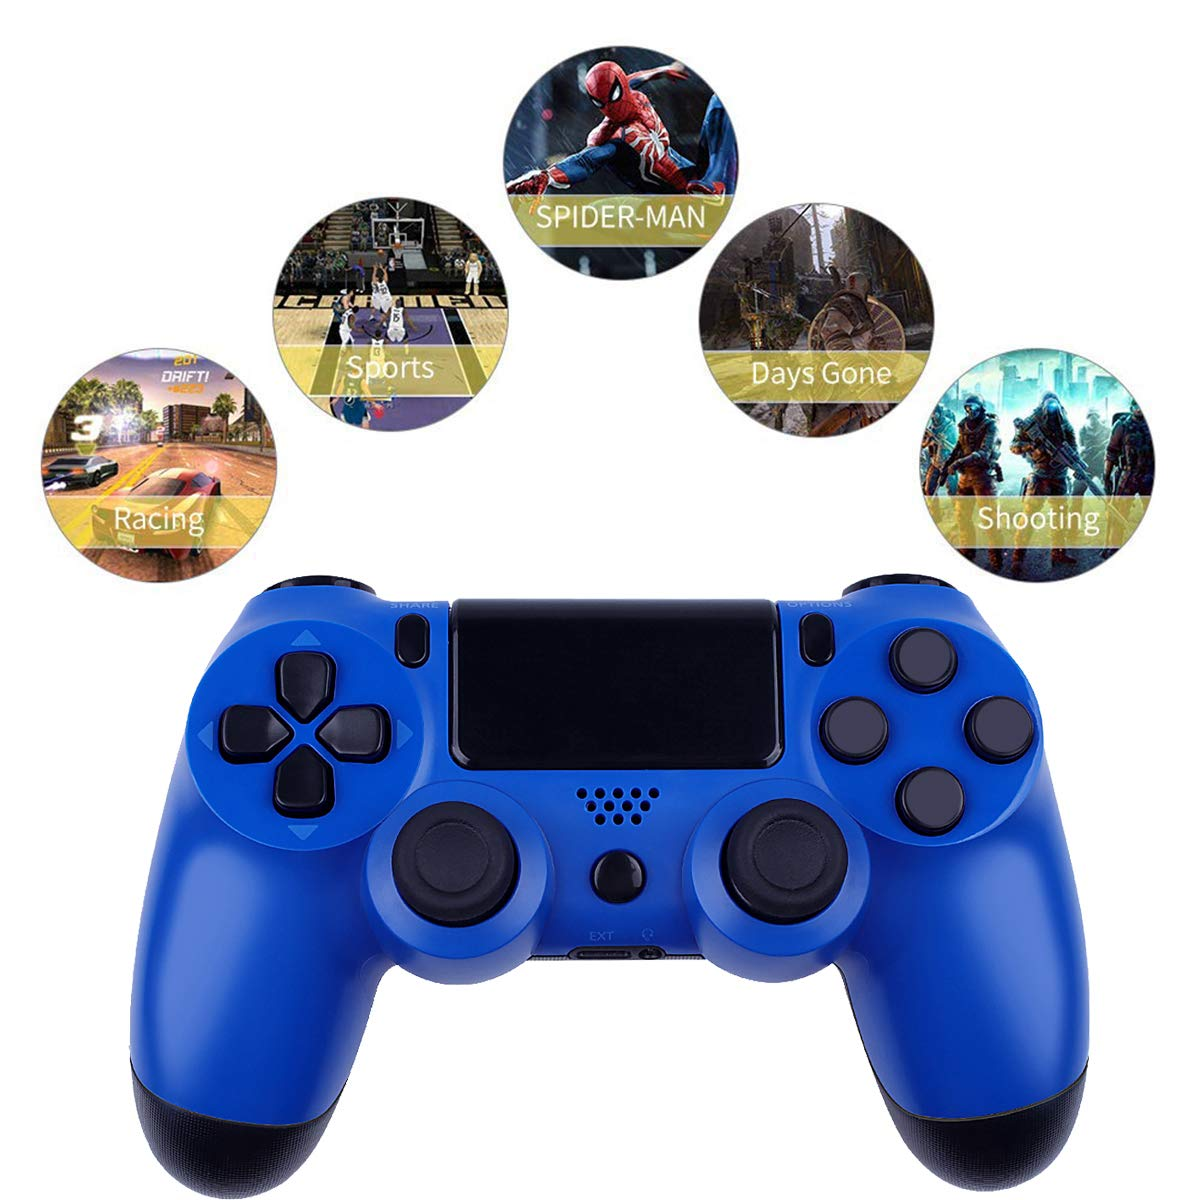 Gold1 Wireless Controllers for PS4 Playstation 4 Dual Shock Six-axis,Bluetooth Remote Gaming Gamepad Joystick